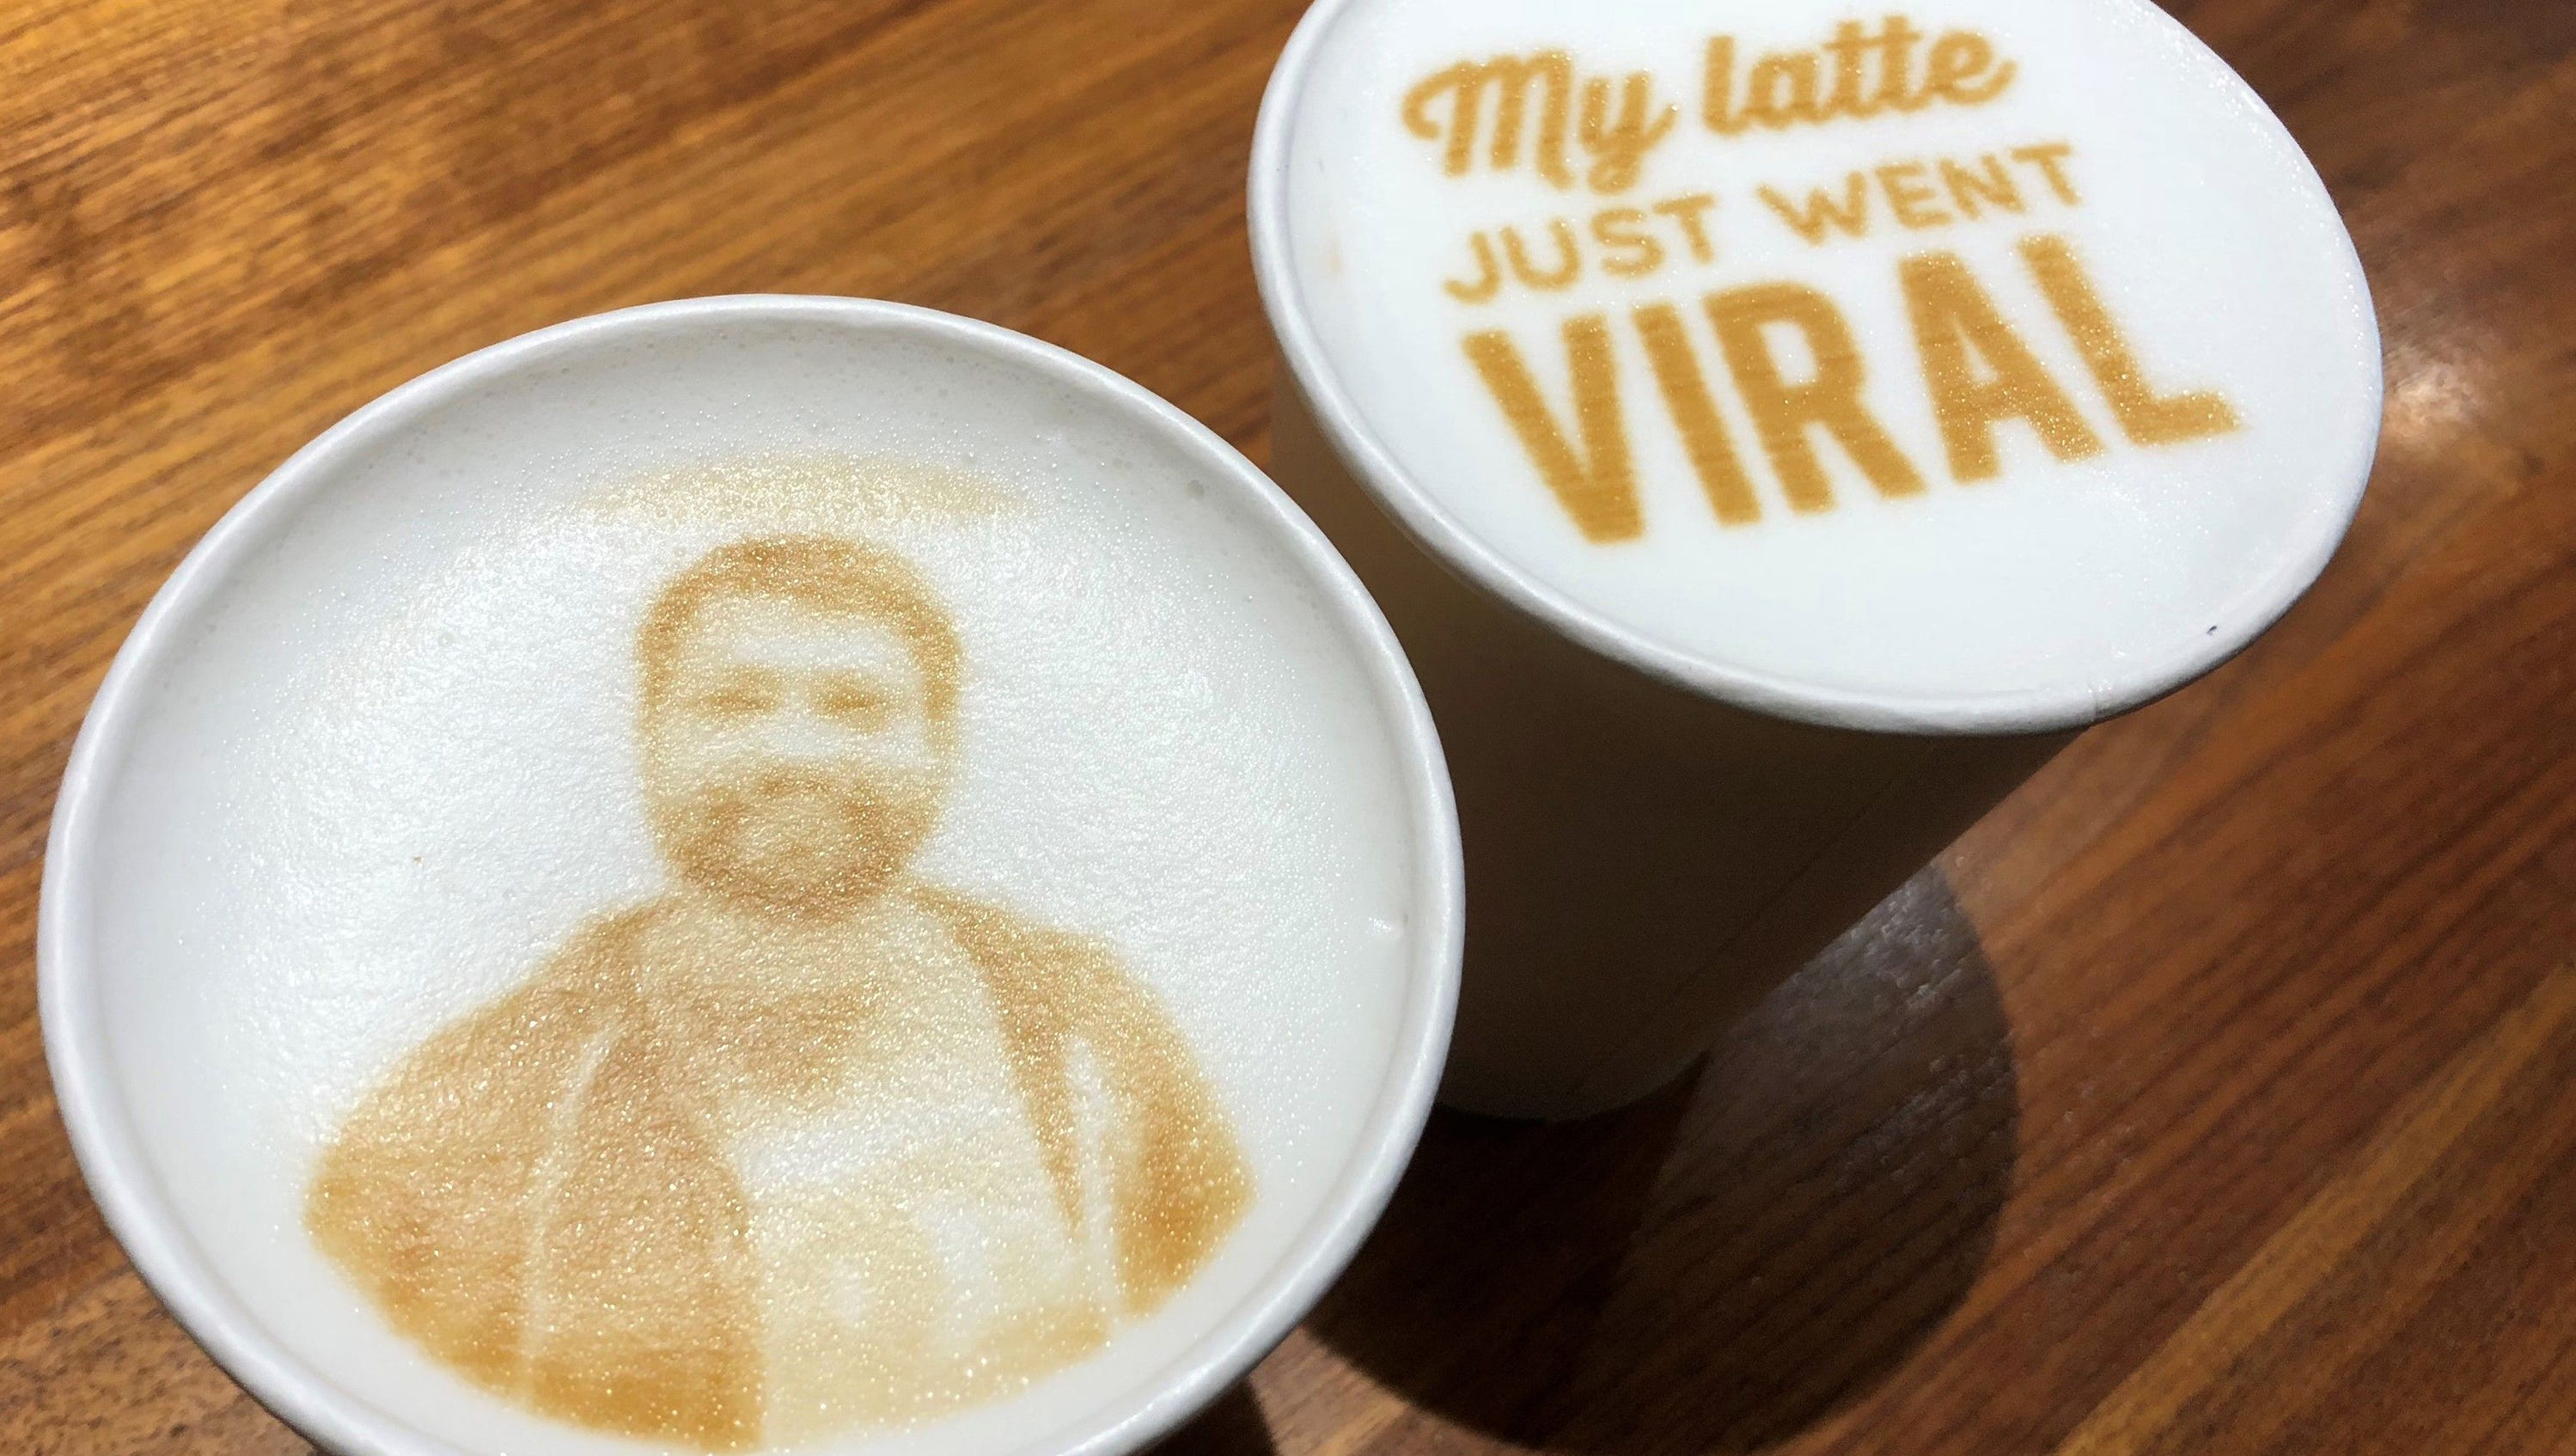 Selfie Latte Coffee Shop Machine Will Turn Your Face Into